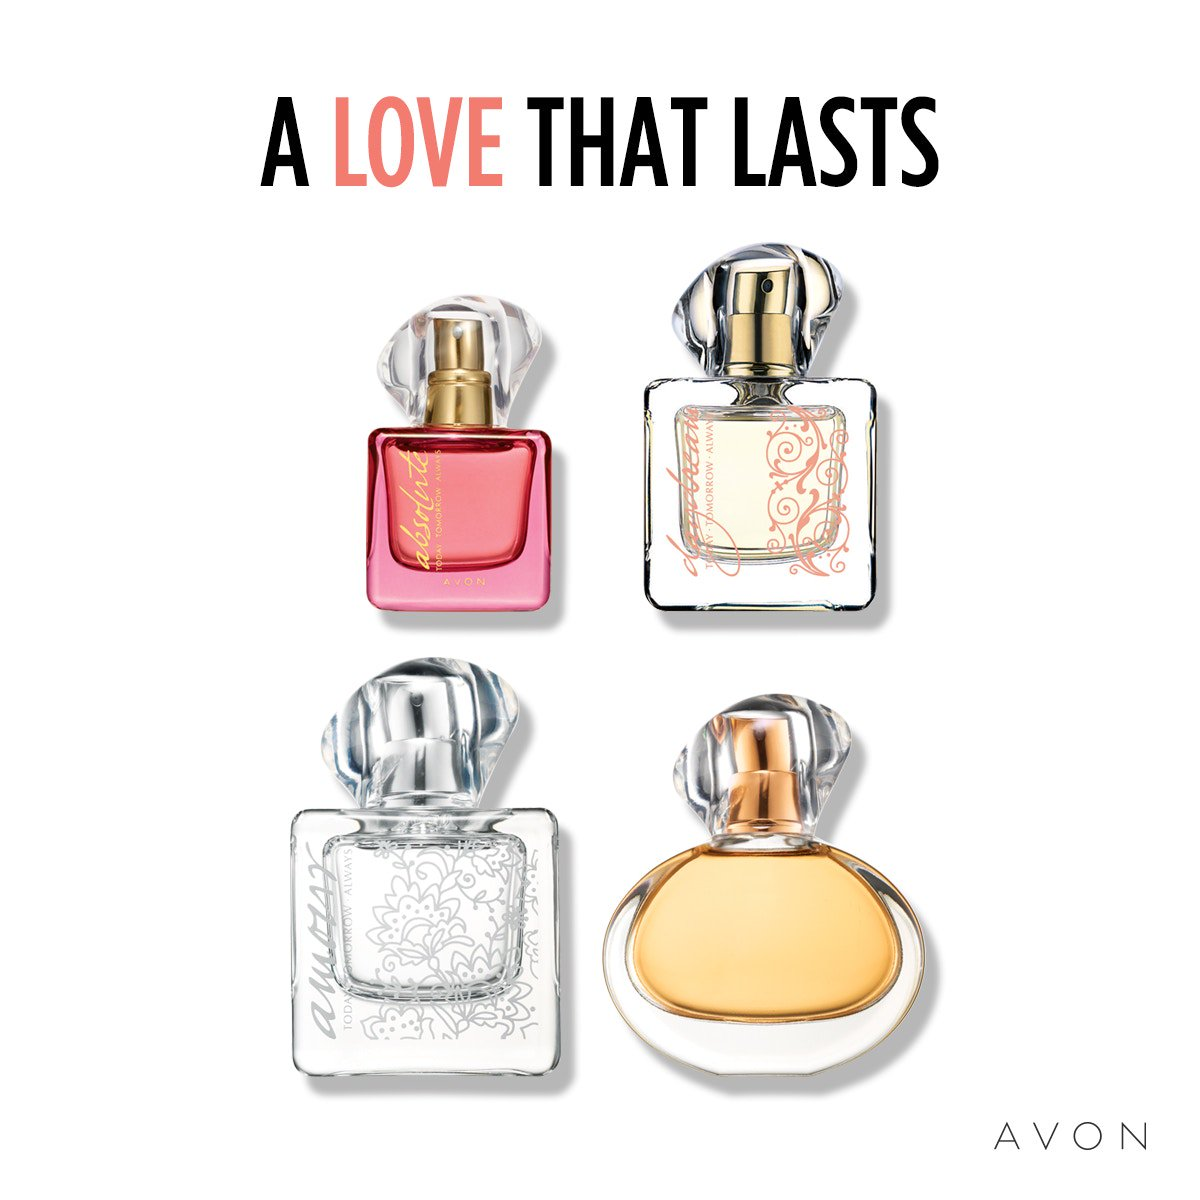 Tina Avon Seagraves On Twitter A Love That Lasts Absolute Parfum